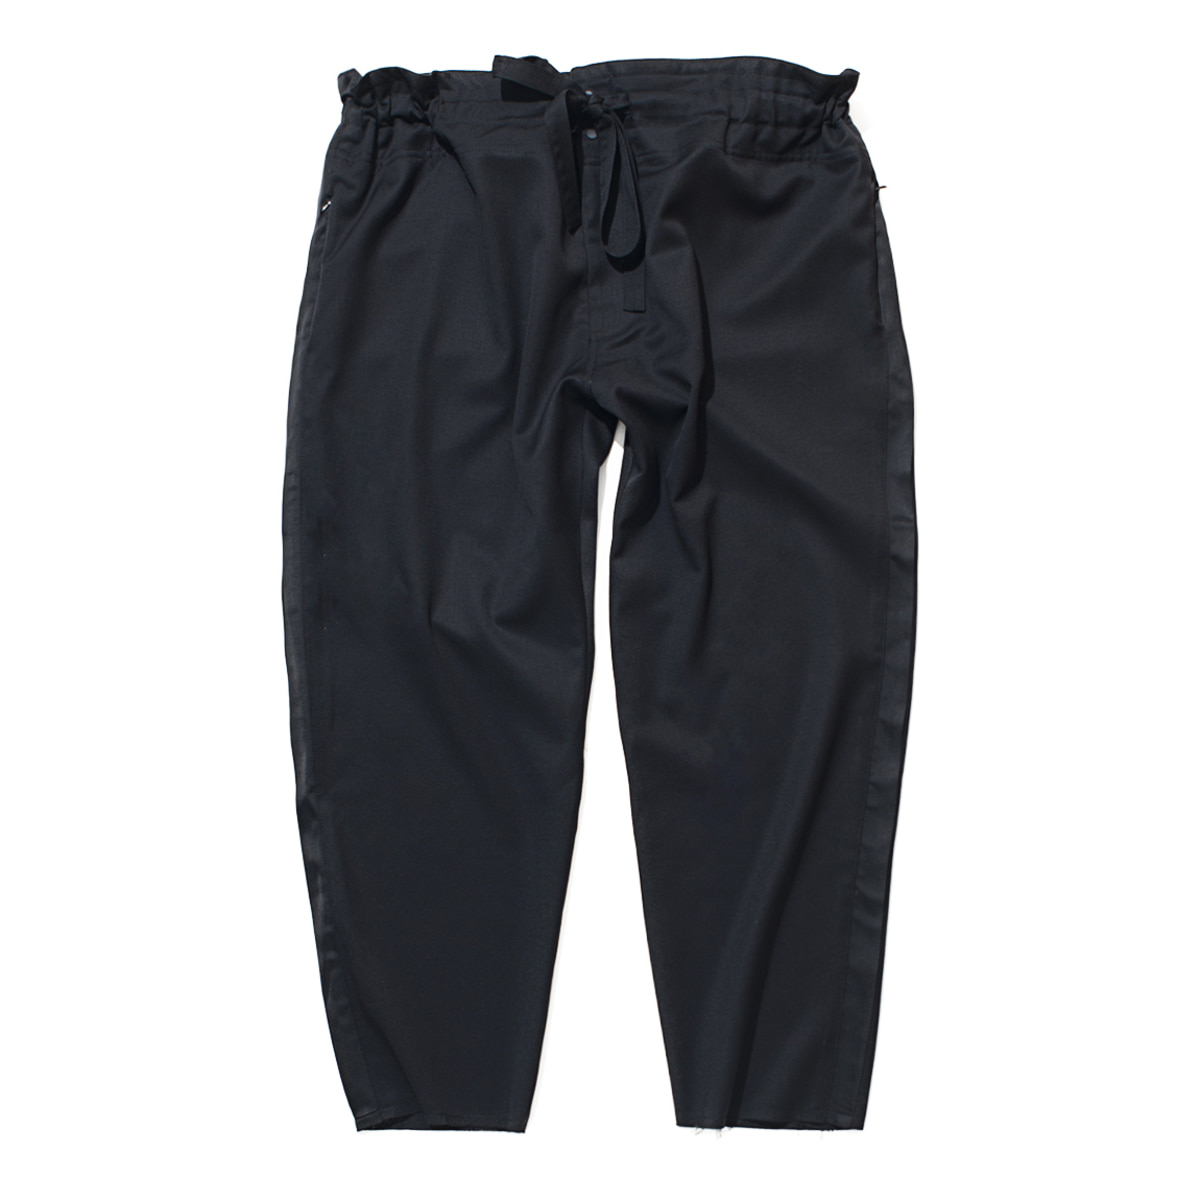 Tapered Wrap Pants (Black)